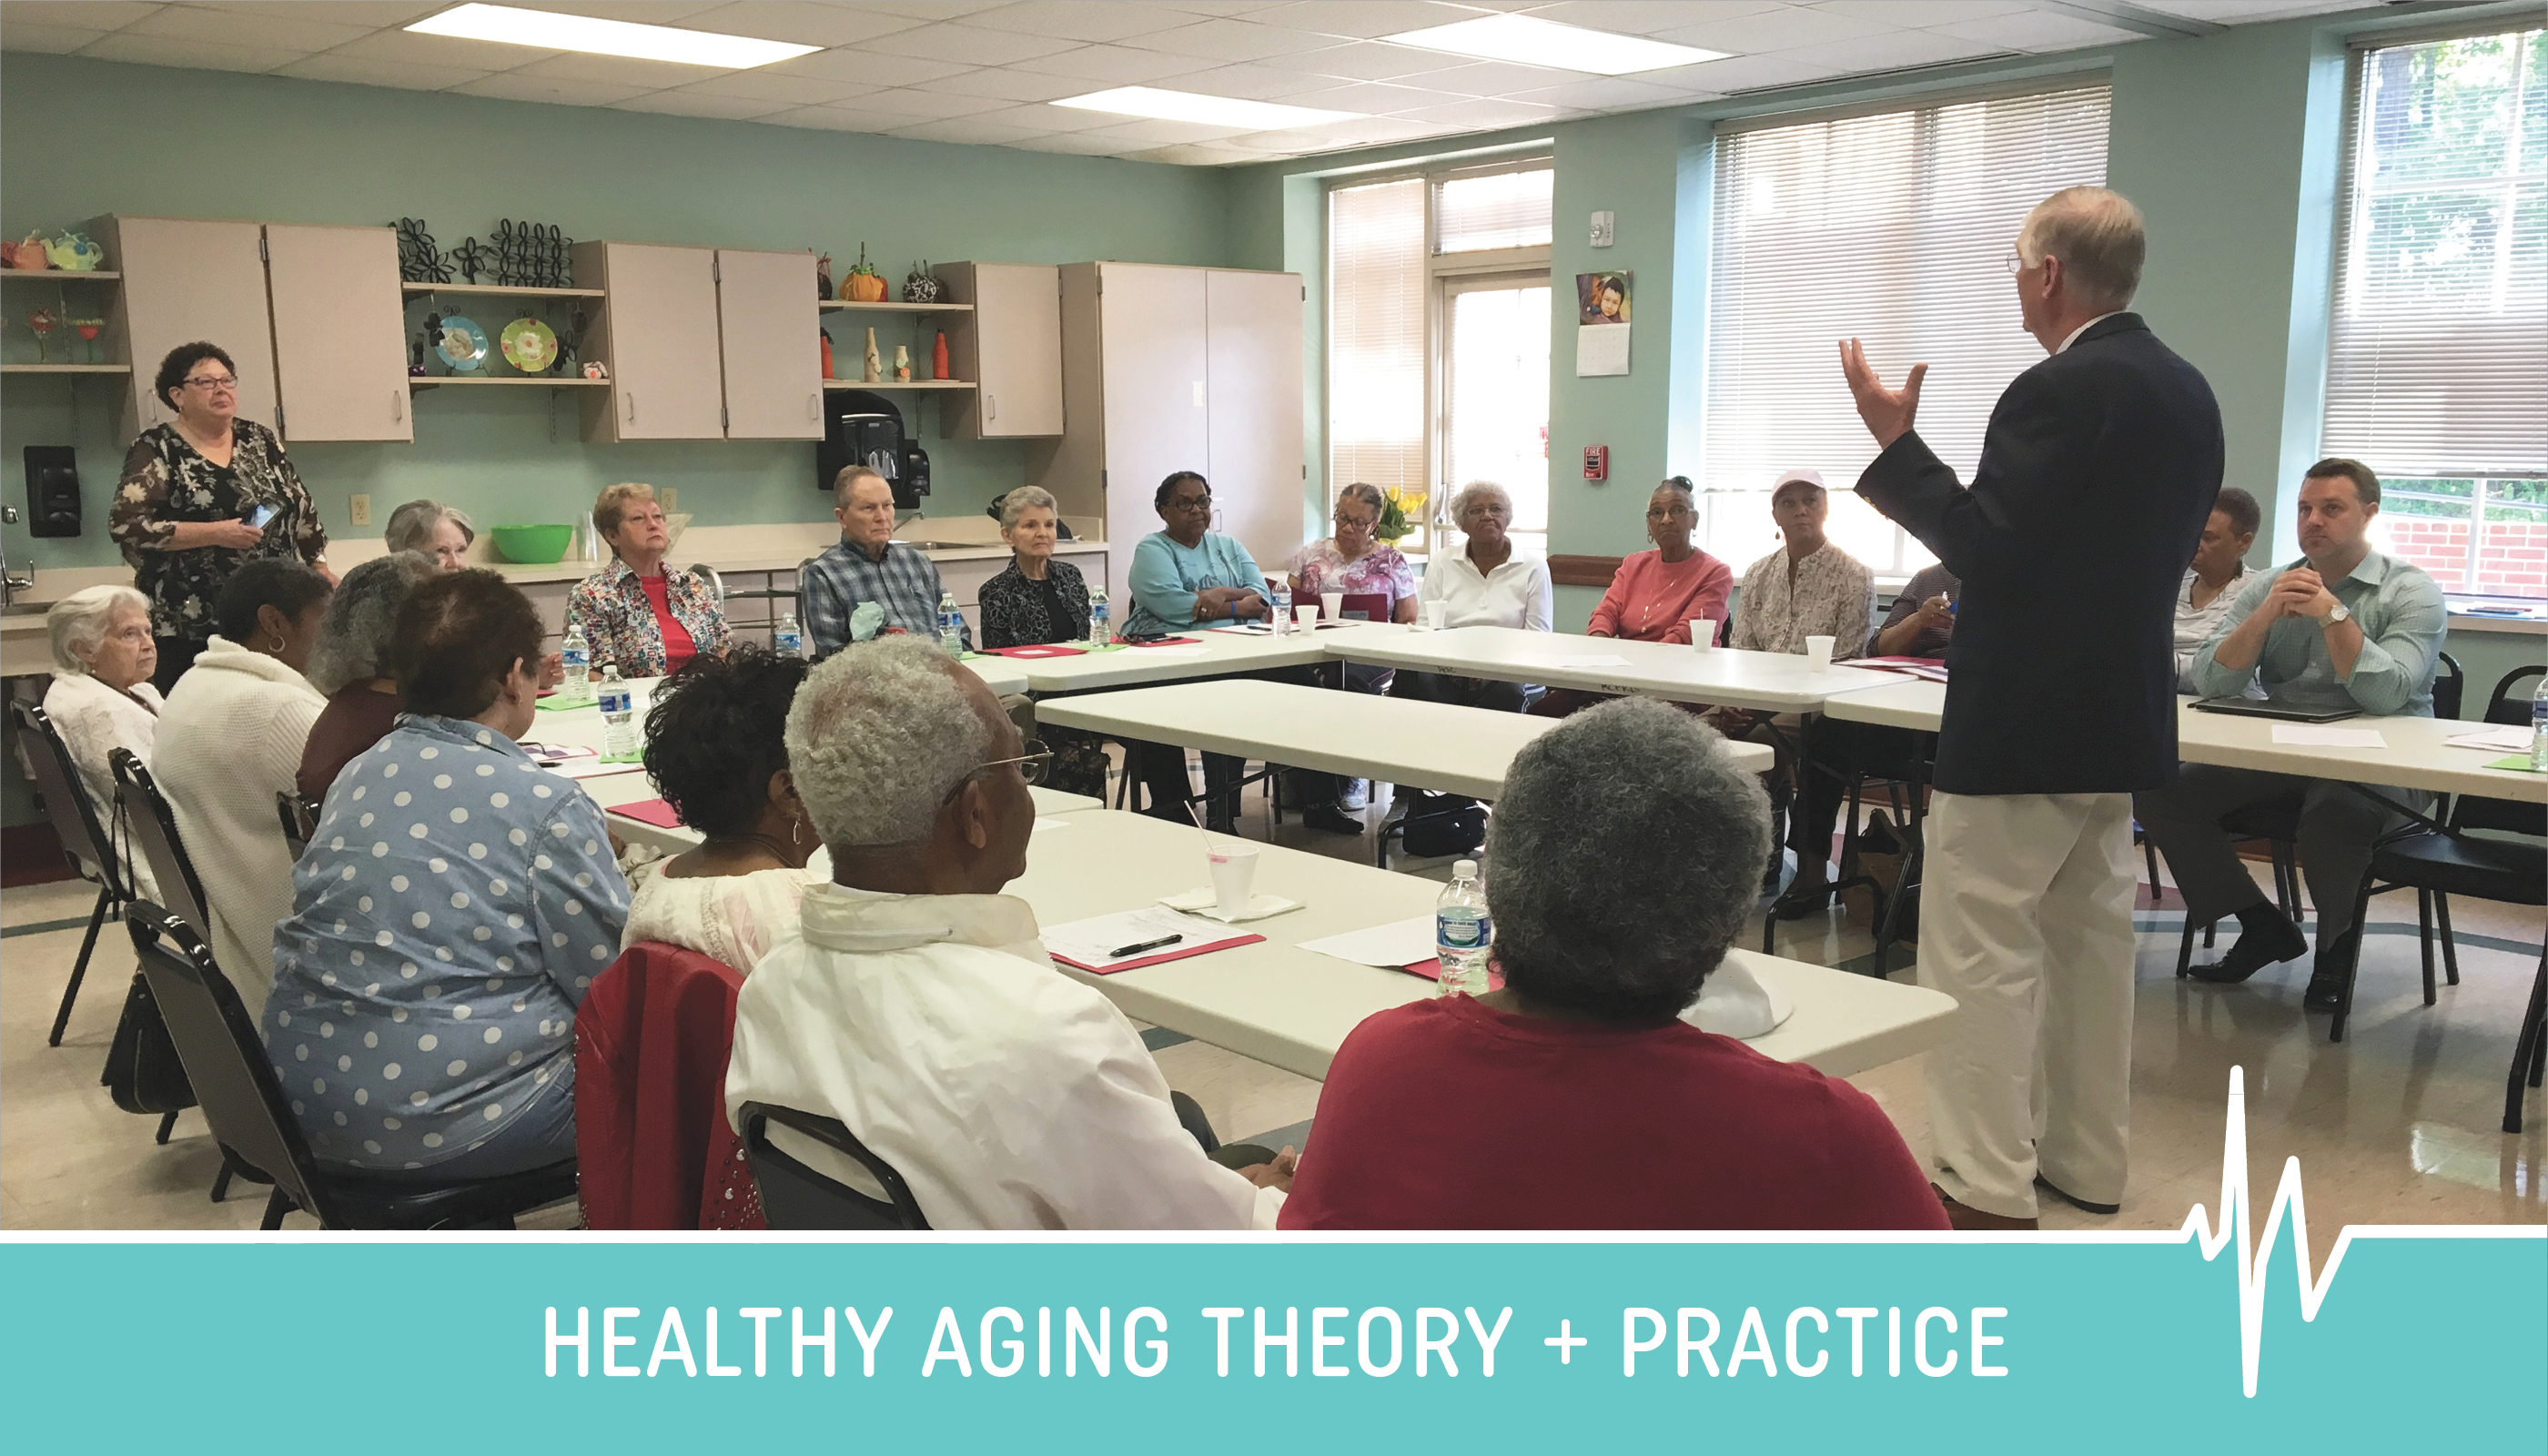 How to Age Well | Healthy Aging Theory + Practice